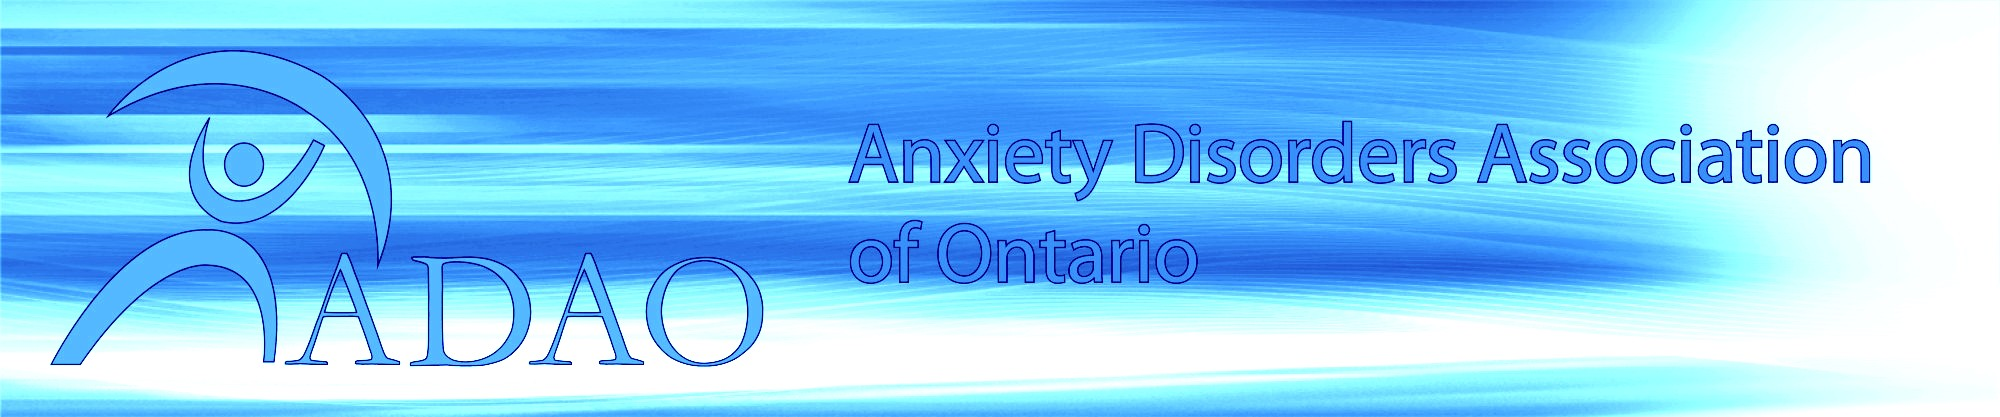 Anxiety Disorders Association of Ontario